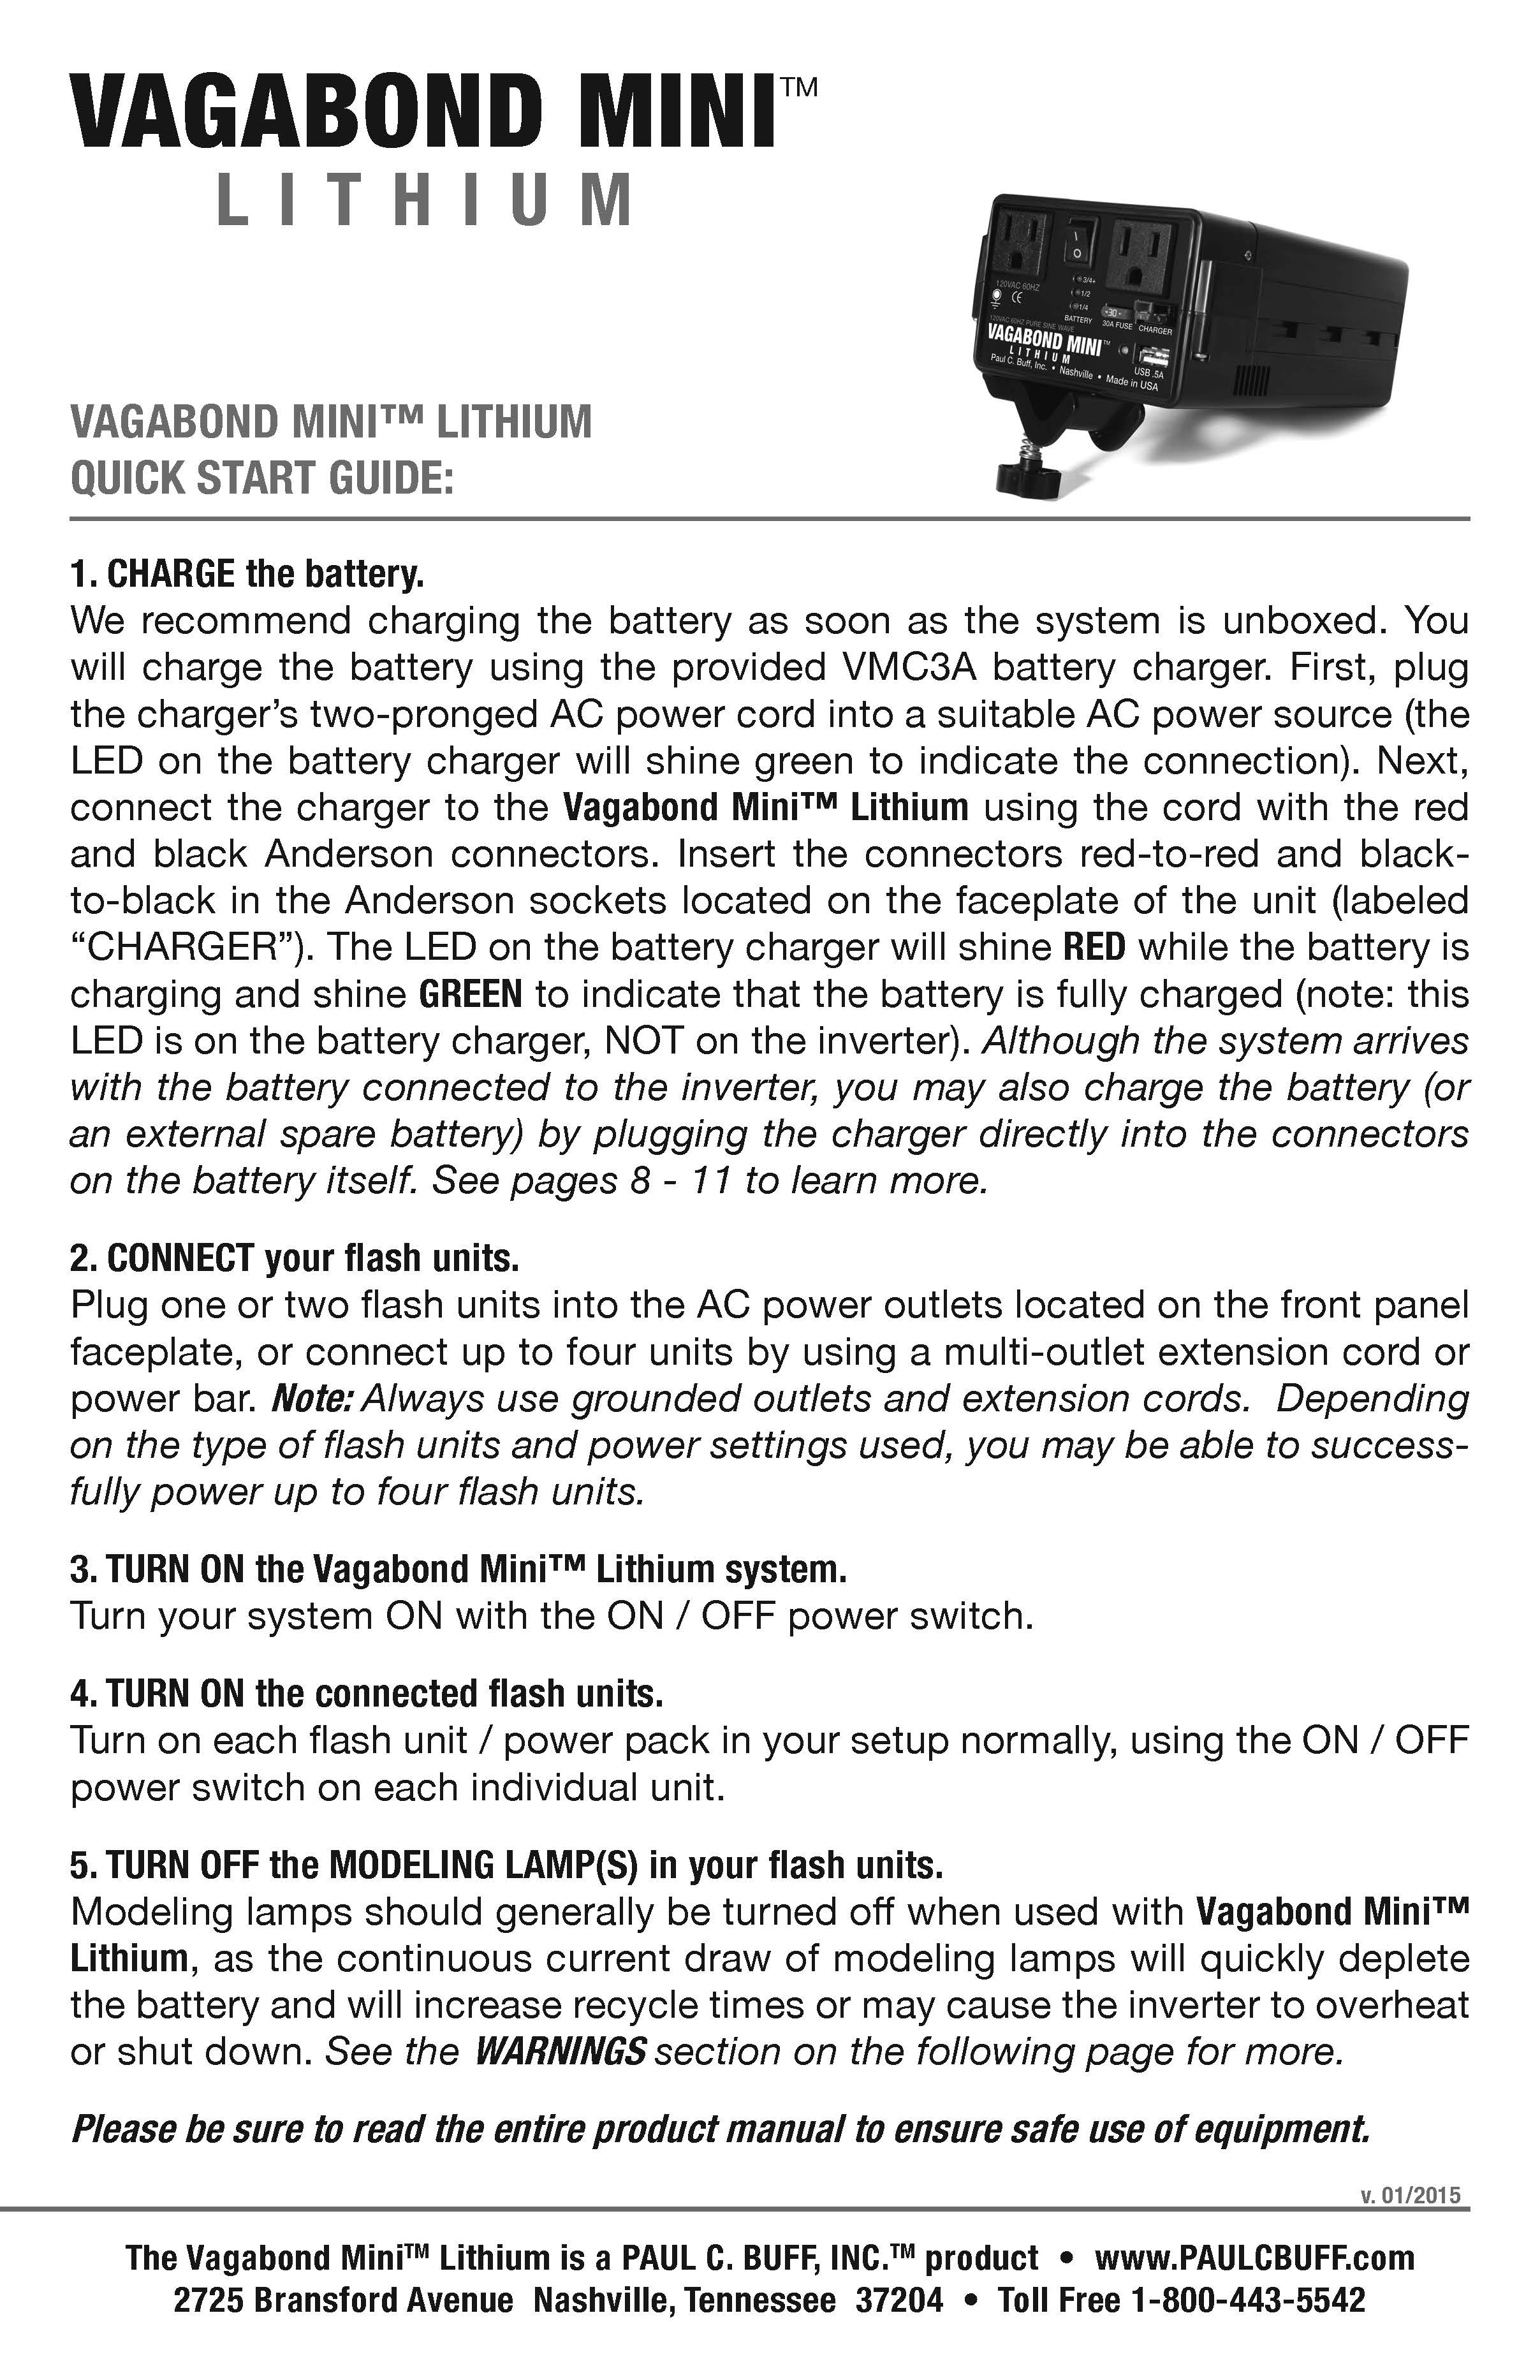 Paul C Buff Inc Manuals And Instructions 3 Way Switch Wiring Diagram For Free Download Ex 120 Vagabond Mini Lithium Manual